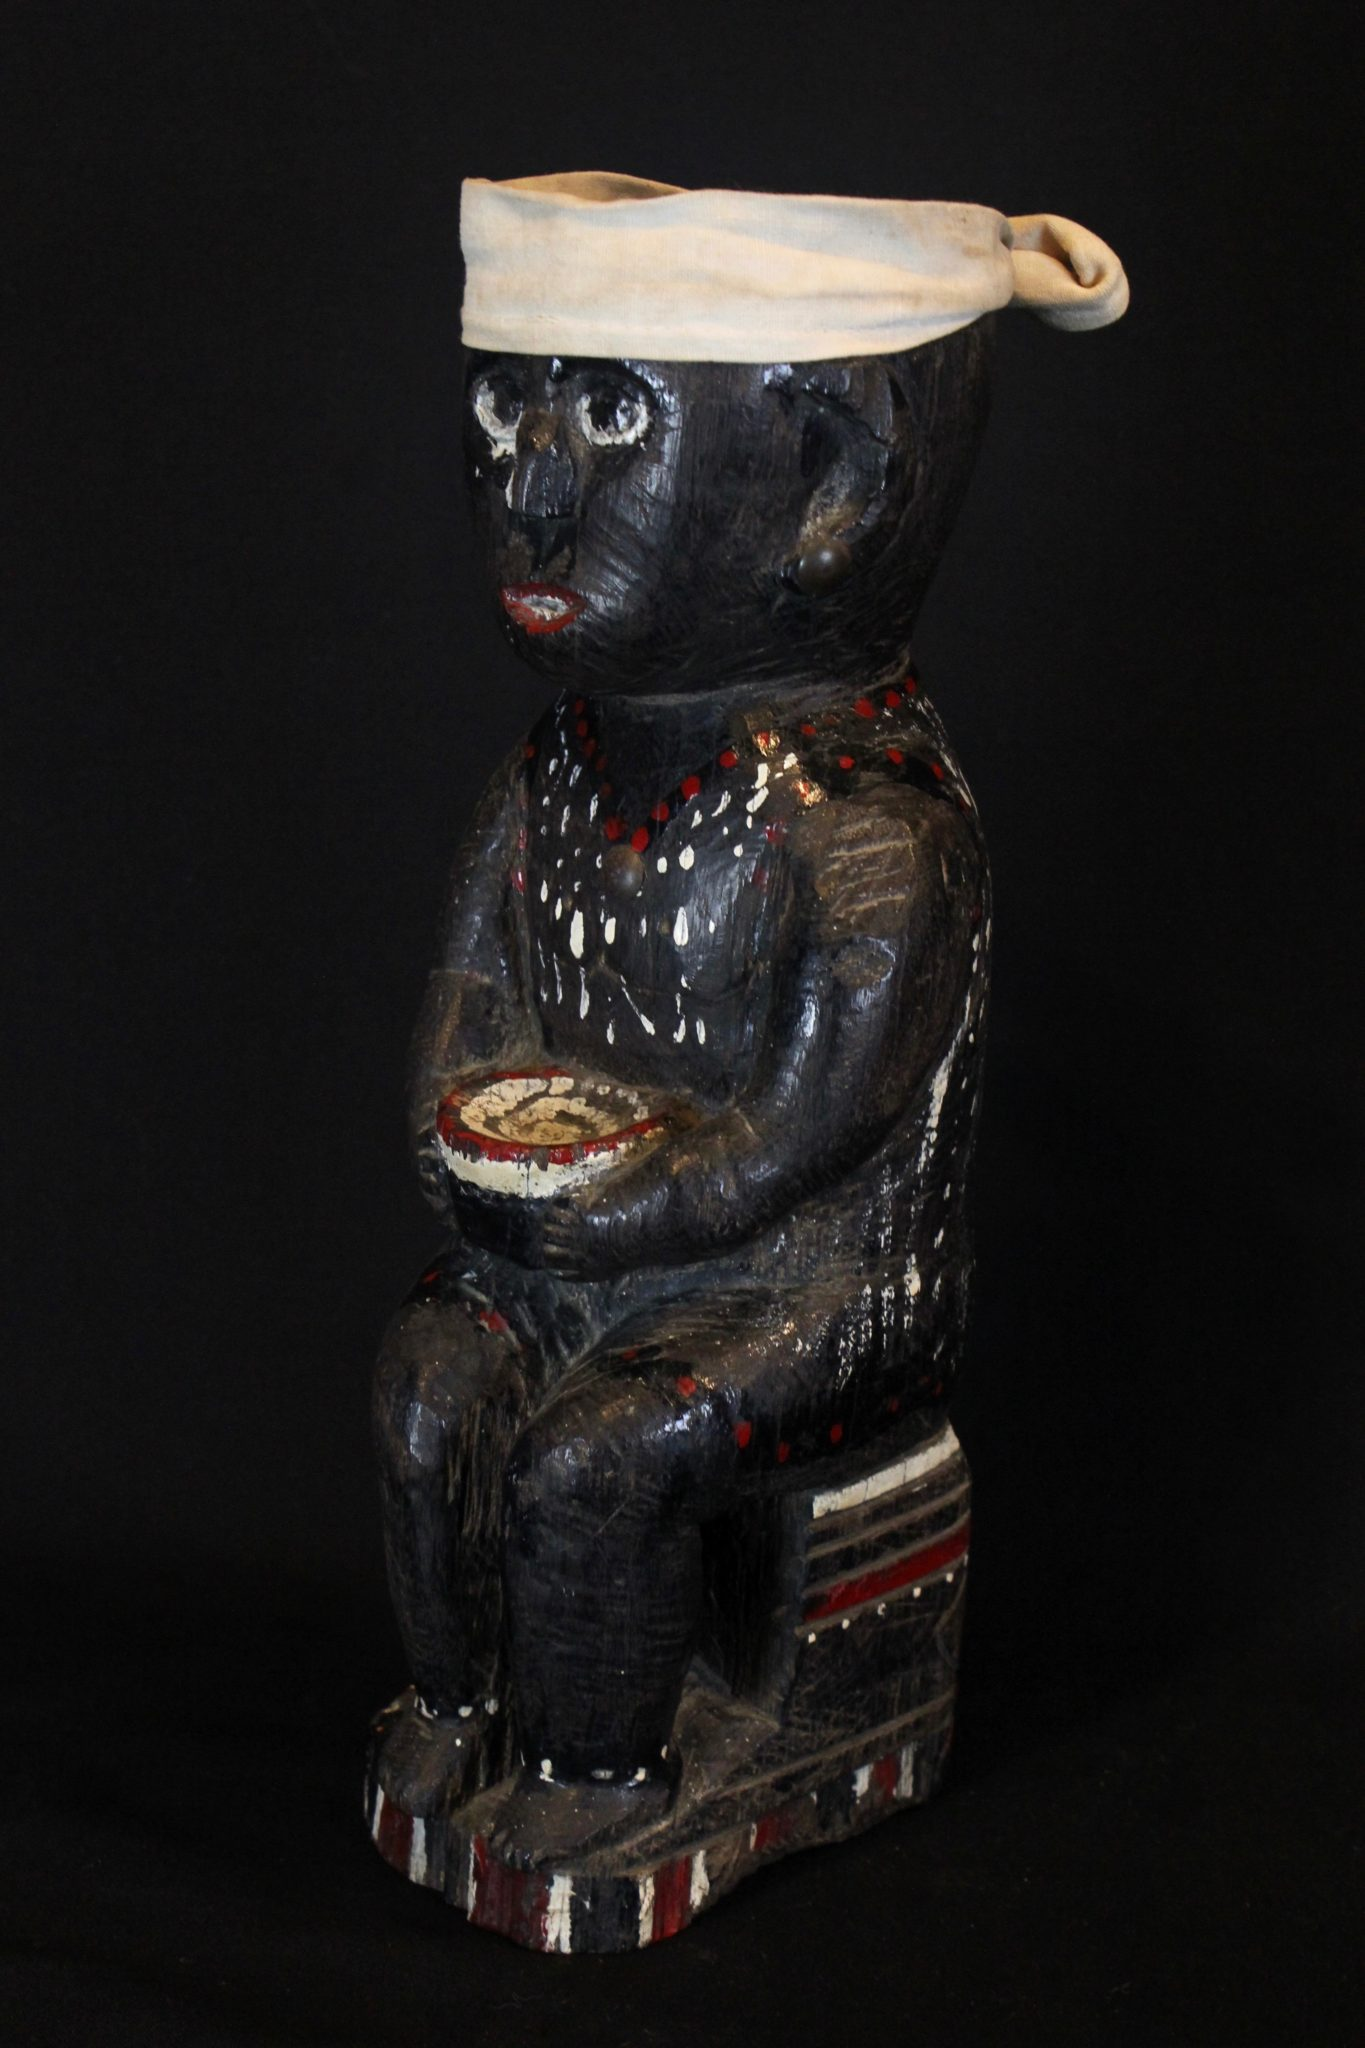 """Medicine Man Effigy Betel Nut Offering Figure, Kalimantan, Borneo, Indonesia, Dayak tribe, Early 20th c, Wood, cloth, paint Used to hold betel nuts as a ritual offering to the deities. 13"""" x 4 ½"""" x 5"""", $1200."""